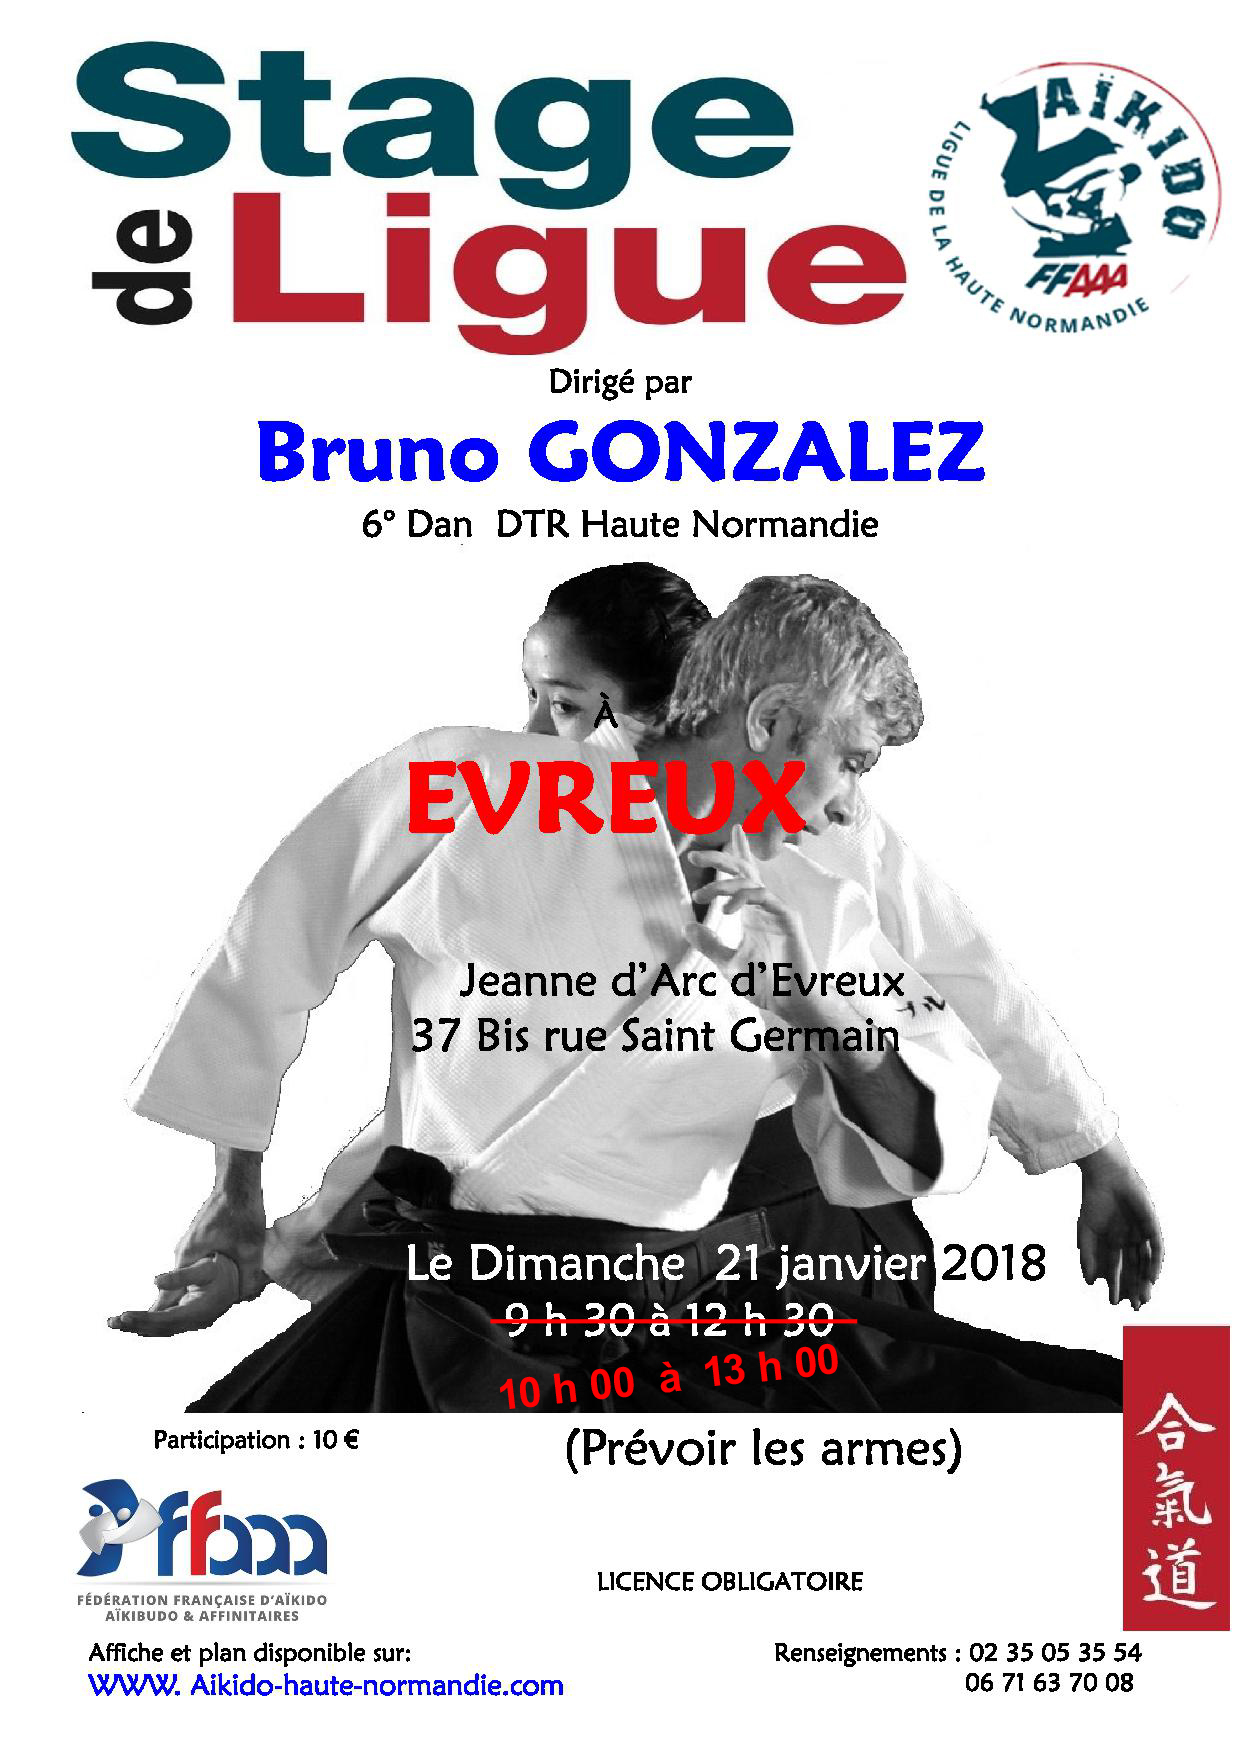 Stage de ligue Bruno Gonzalez